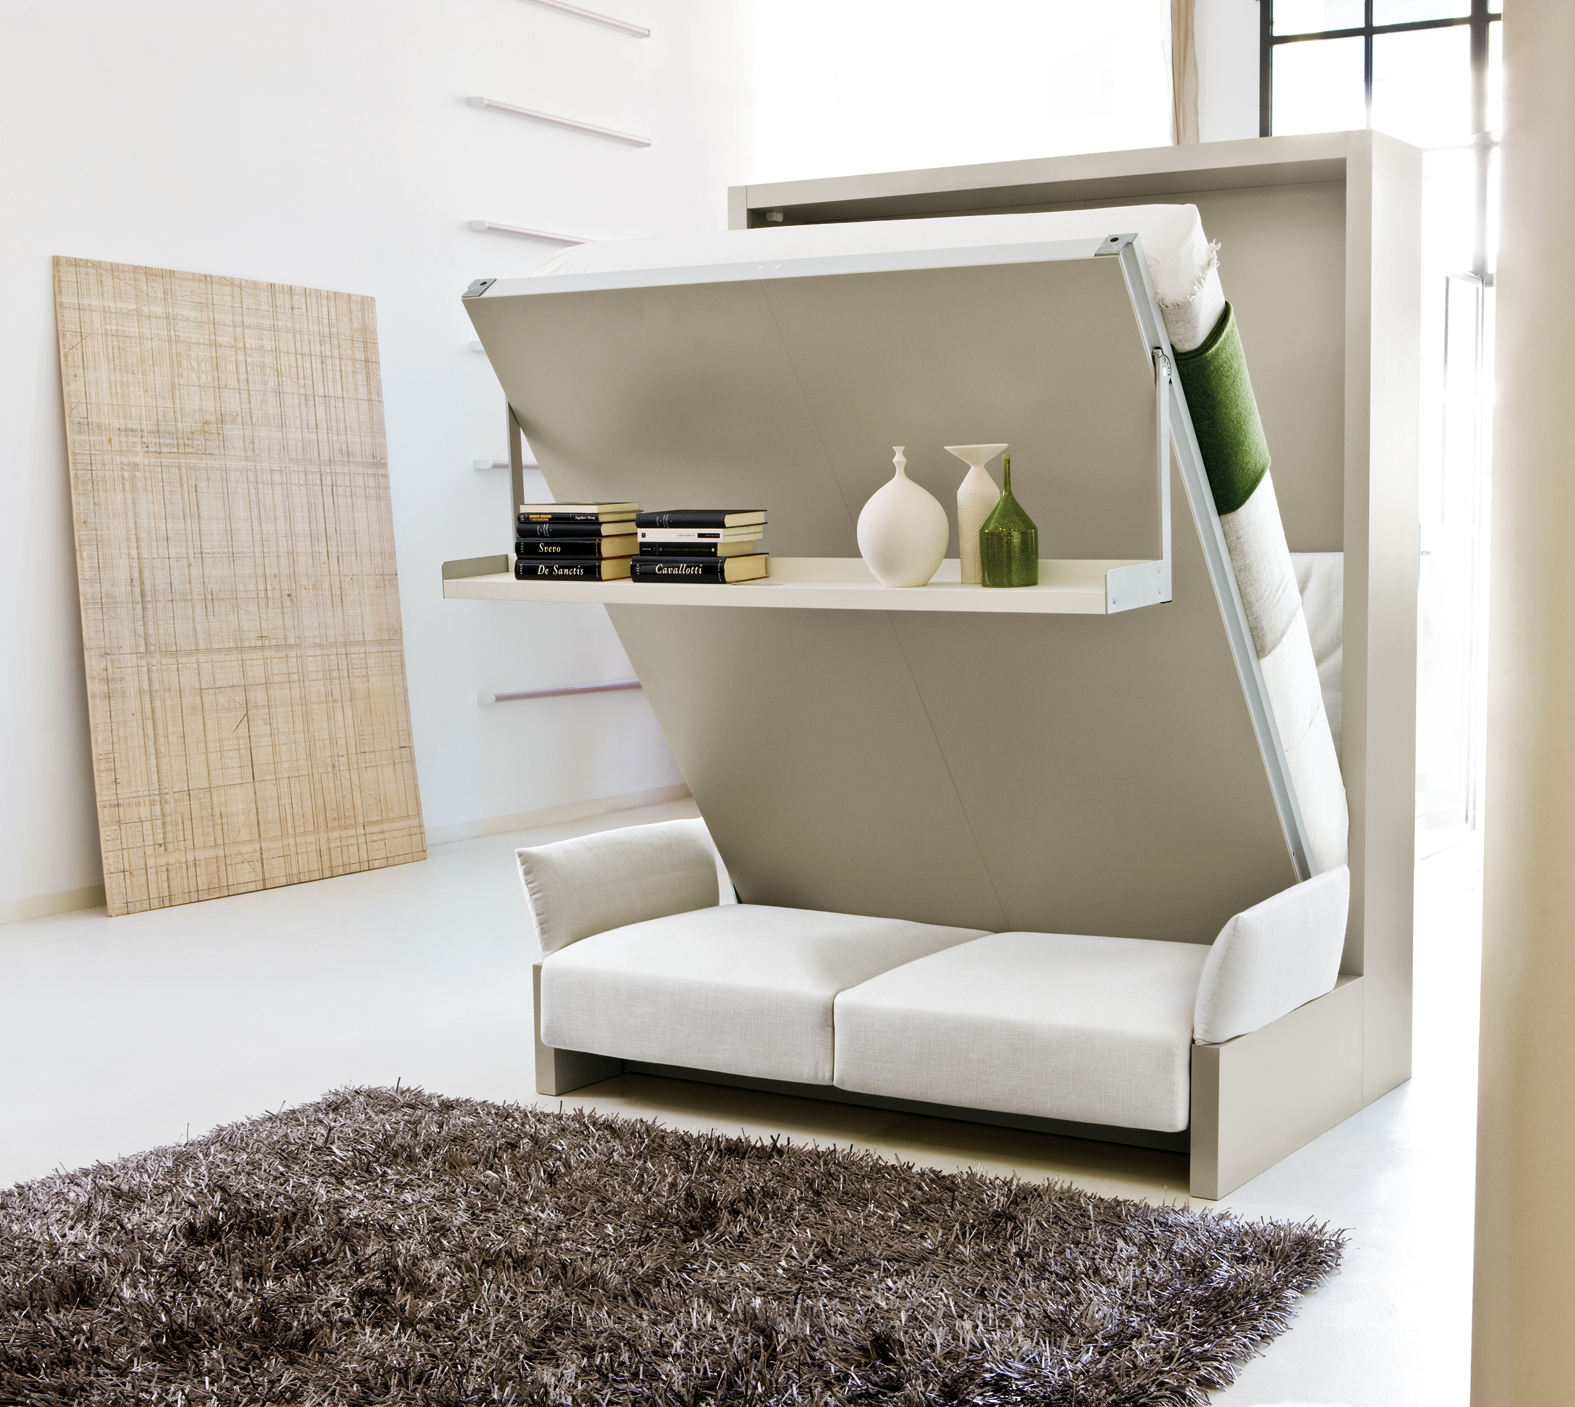 Awe Inspiring Murphy Beds 9 Hide Away Sleepers Bob Vila Largest Home Design Picture Inspirations Pitcheantrous